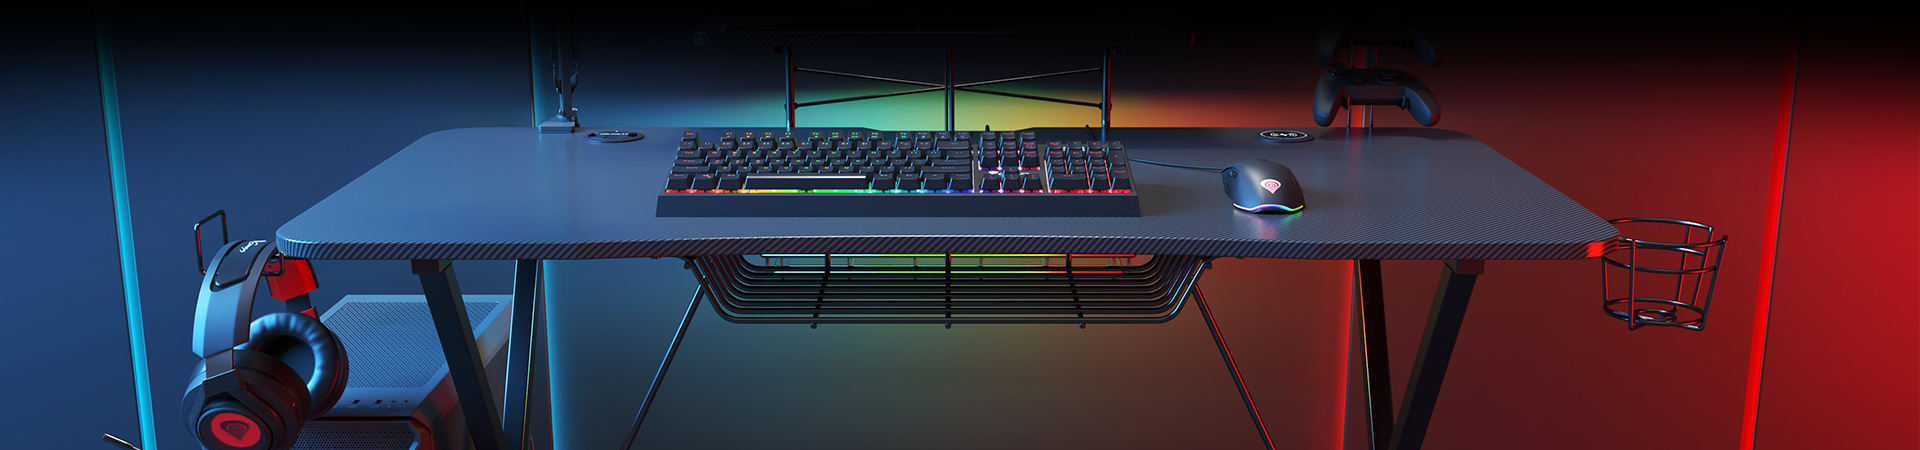 HOLM 300 RGB – PROFESSIONAL GAMING DESK